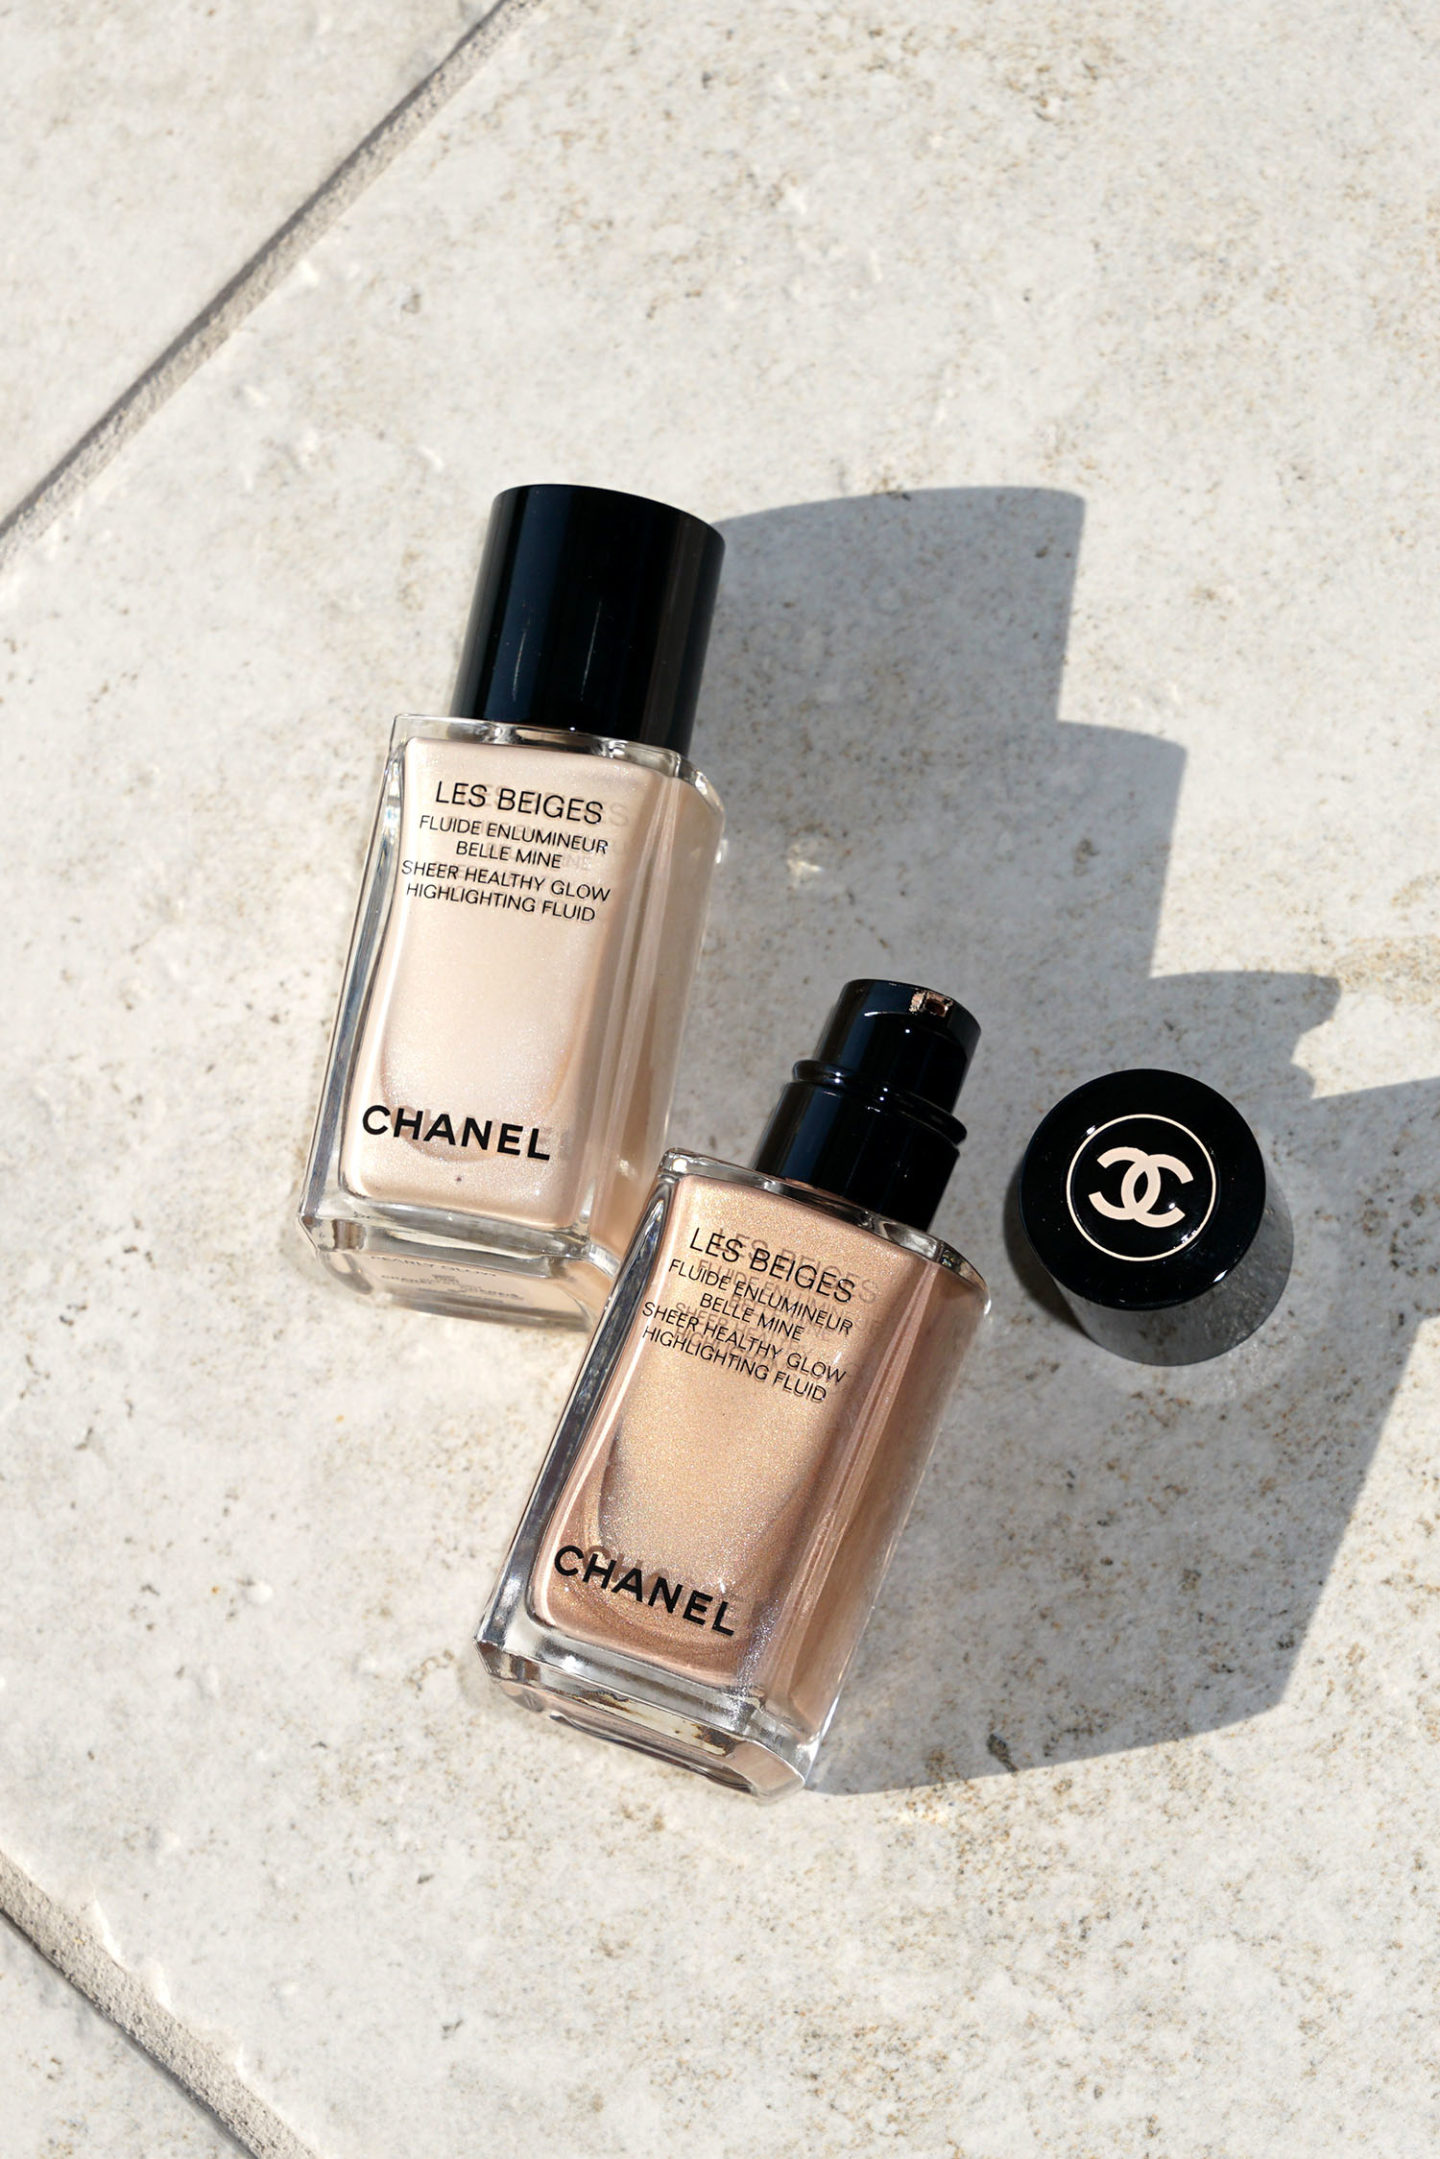 Chanel Les Beiges Sheer Healthy Glow Highlighting Fluid Review